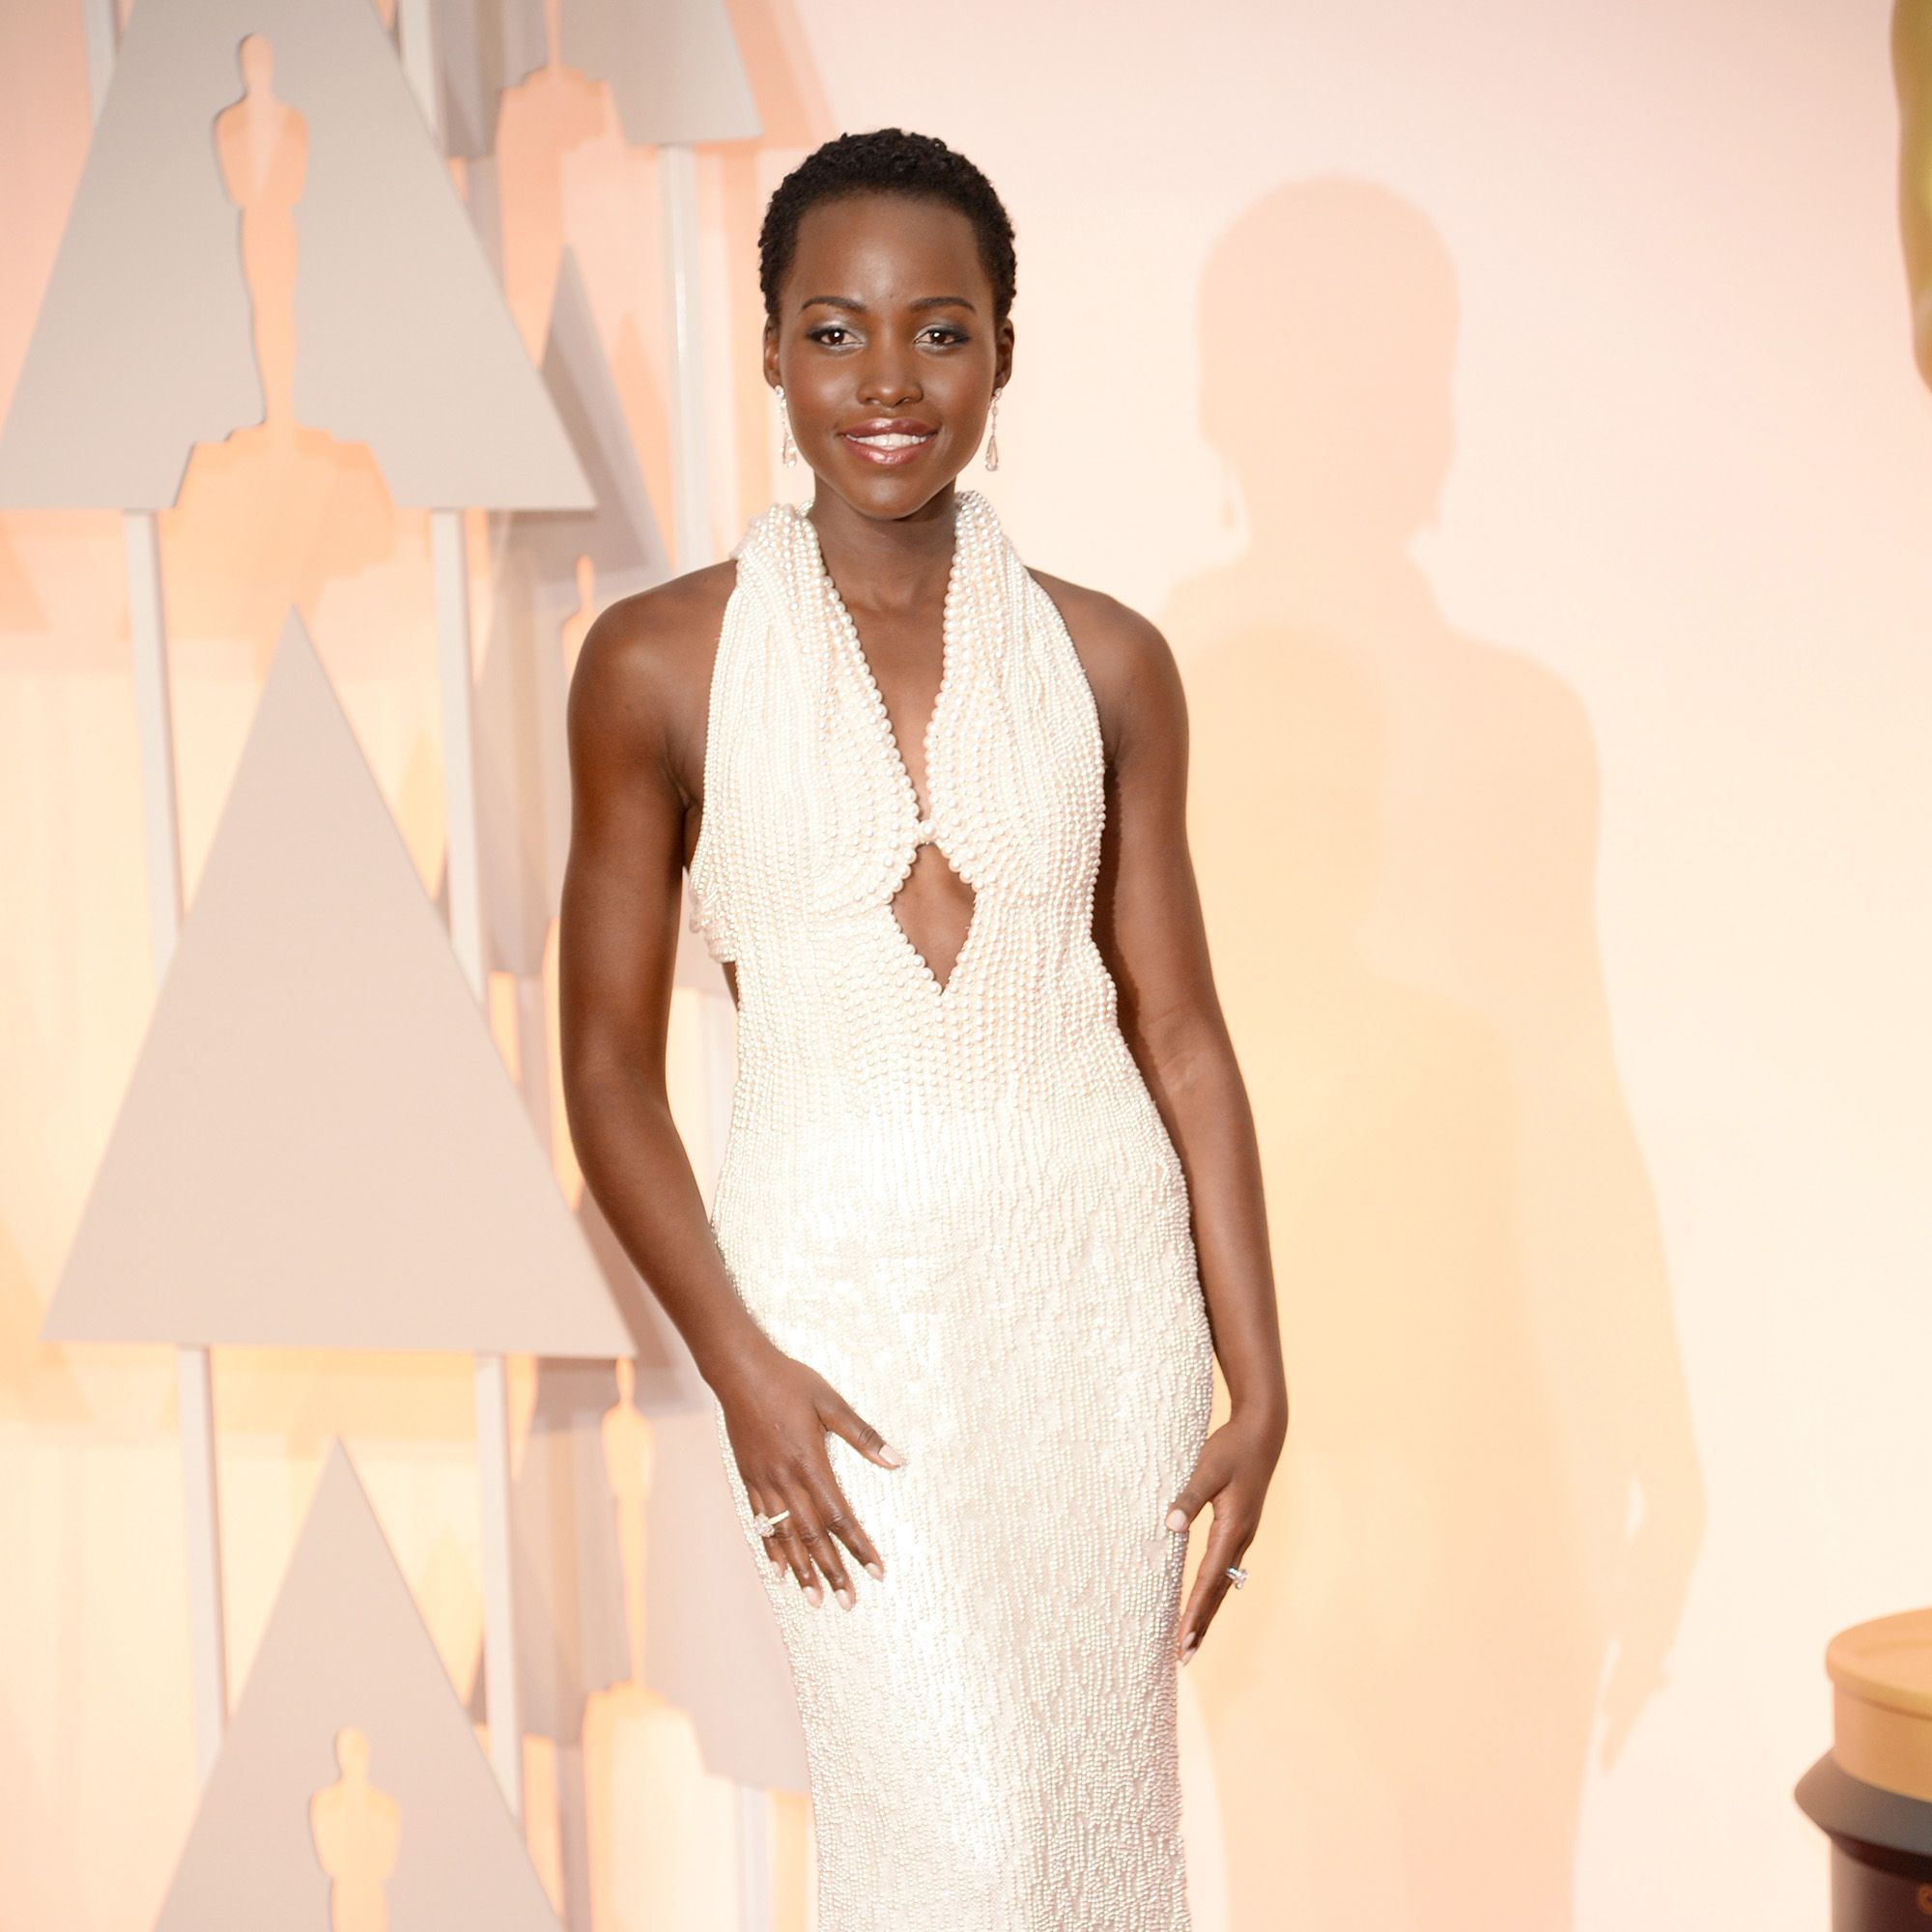 HOLLYWOOD, CA - FEBRUARY 22:  Actress Lupita Nyong'o attends the 87th Annual Academy Awards at Hollywood &amp&#x3B; Highland Center on February 22, 2015 in Hollywood, California.  (Photo by Kevin Mazur/WireImage)